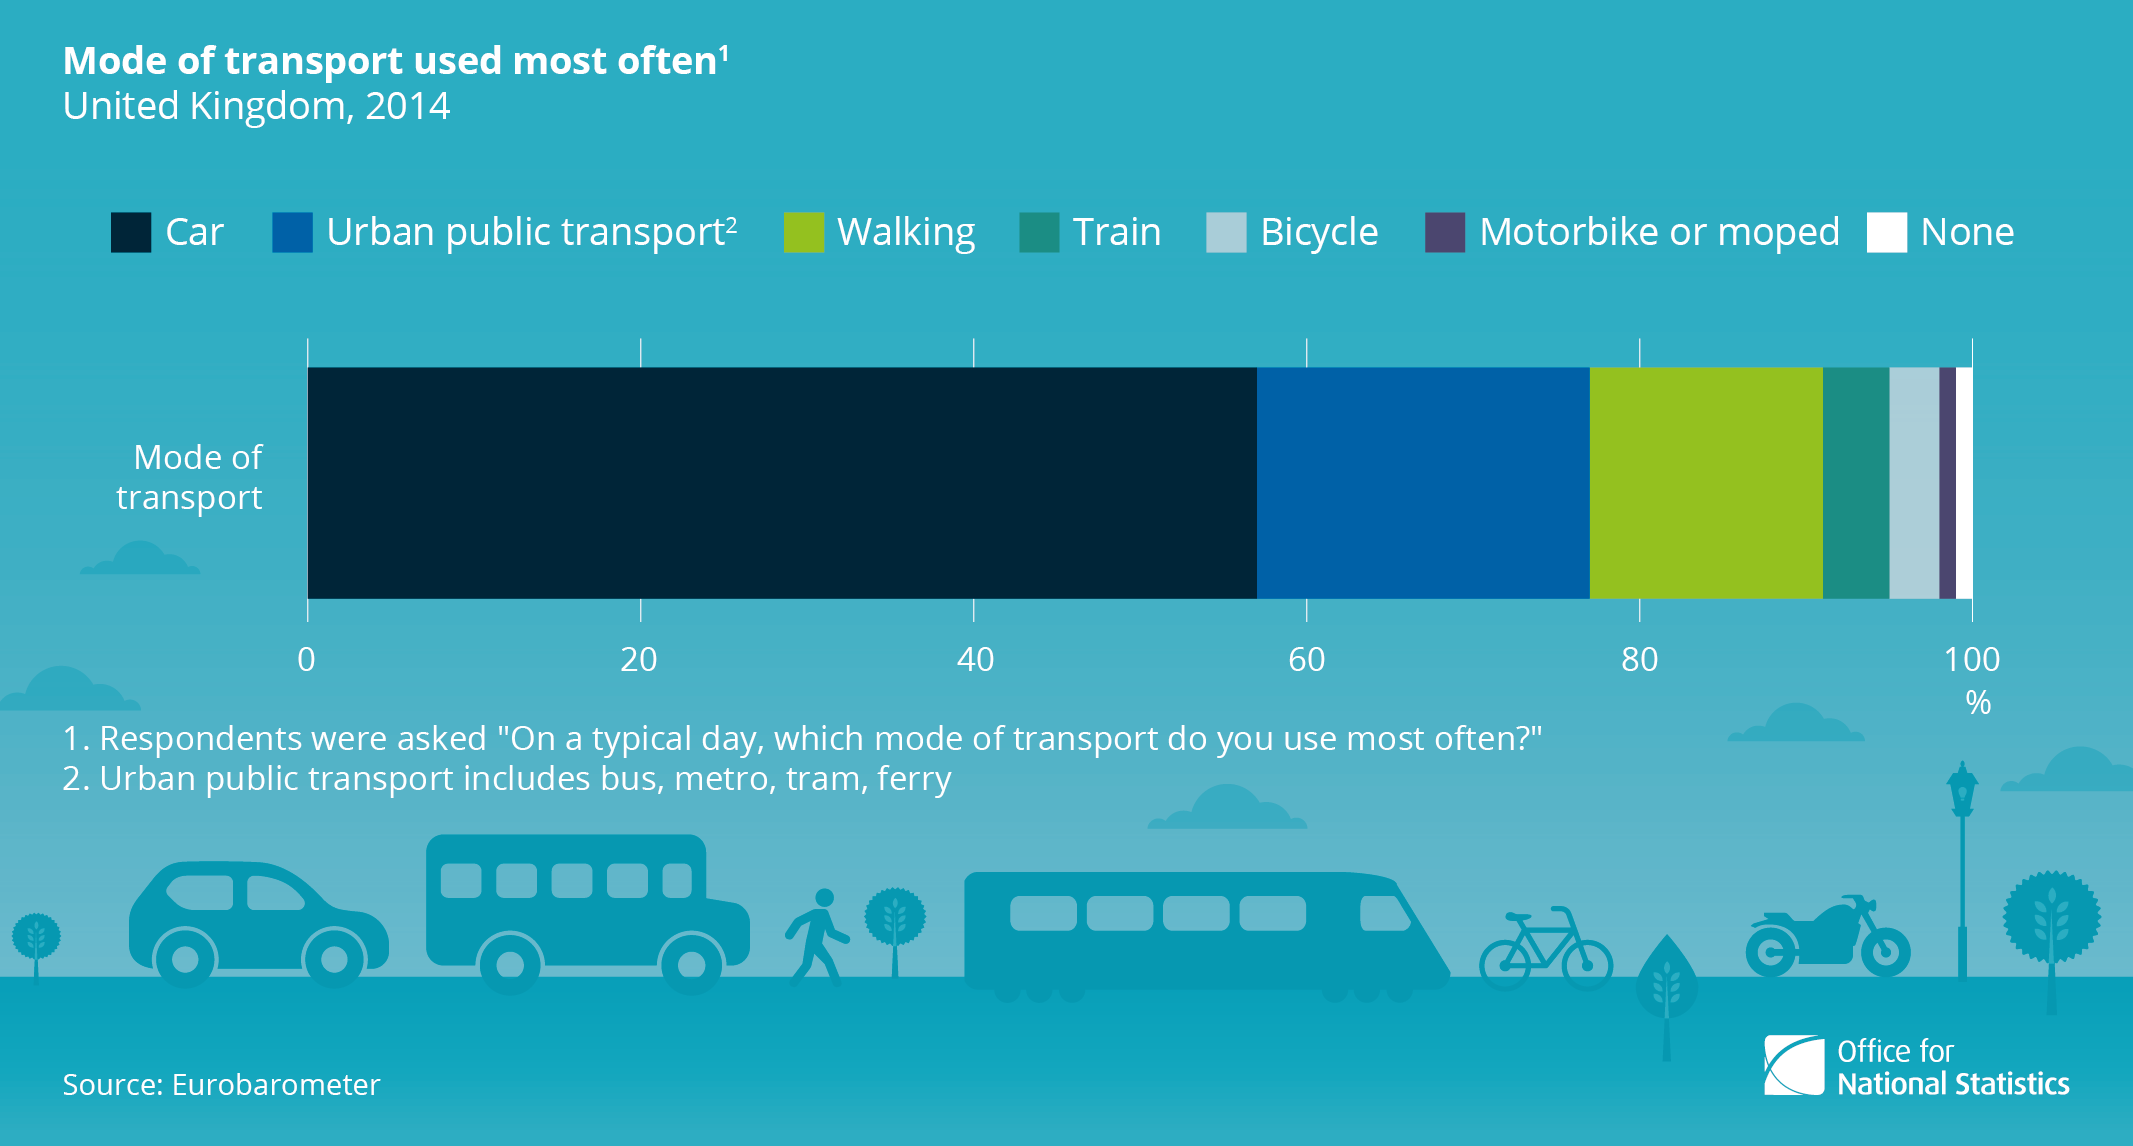 Mode of transport used most often, UK, 2014